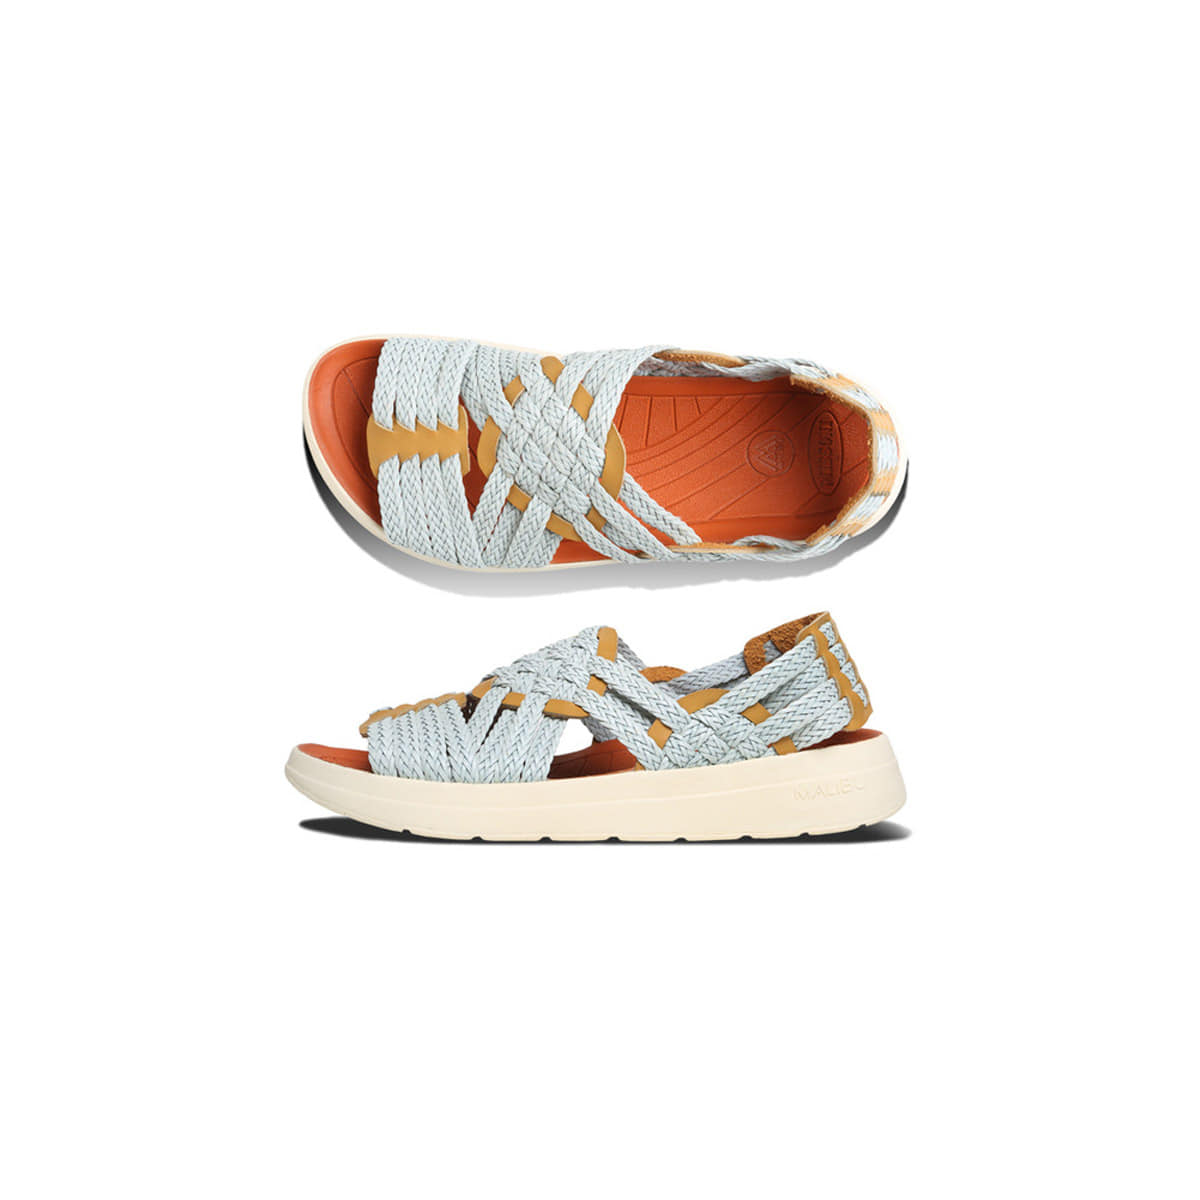 [MALIBU SANDALS] MISSONI x MALIBU CANYON 'LIGHT BLUE YELLOW'